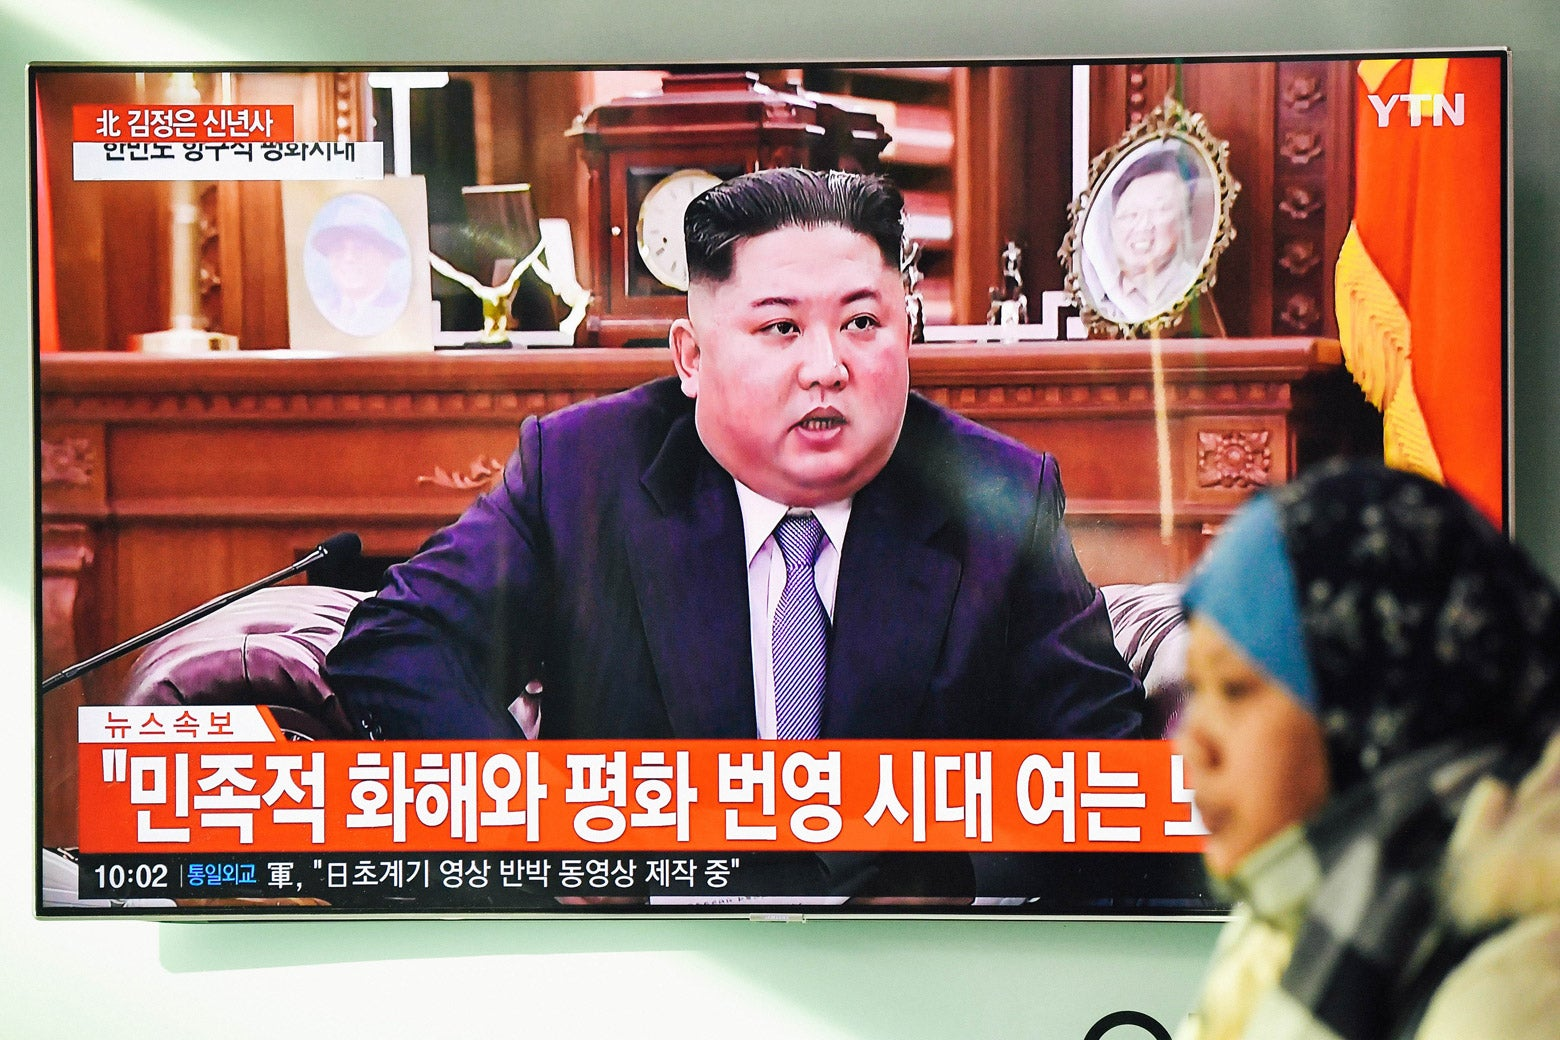 A woman walks past a television screen showing North Korean leader Kim Jong-un giving a New Year's speech.